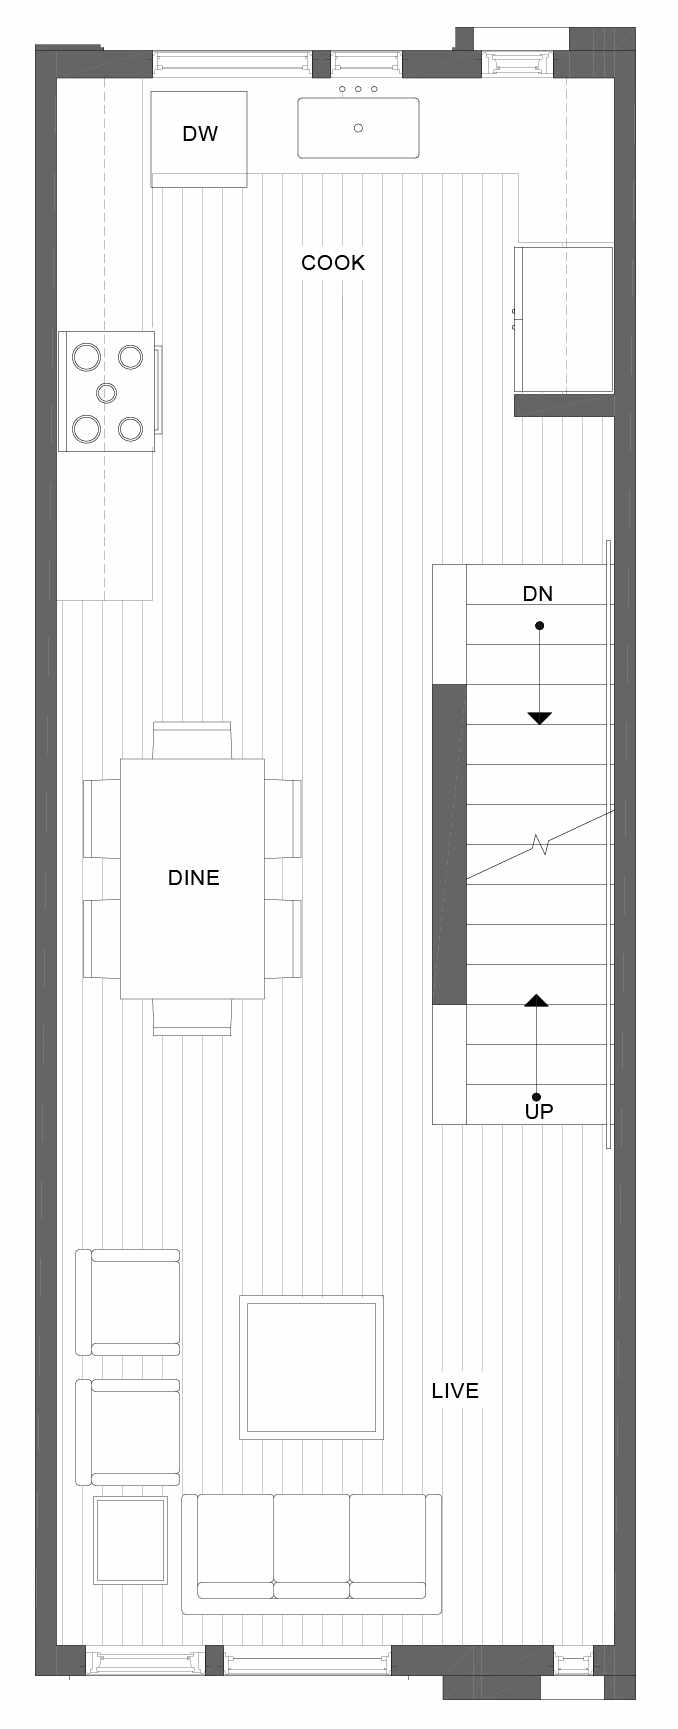 Second Floor Plan of 1101B 14th Ave in the Corazon Townhomes